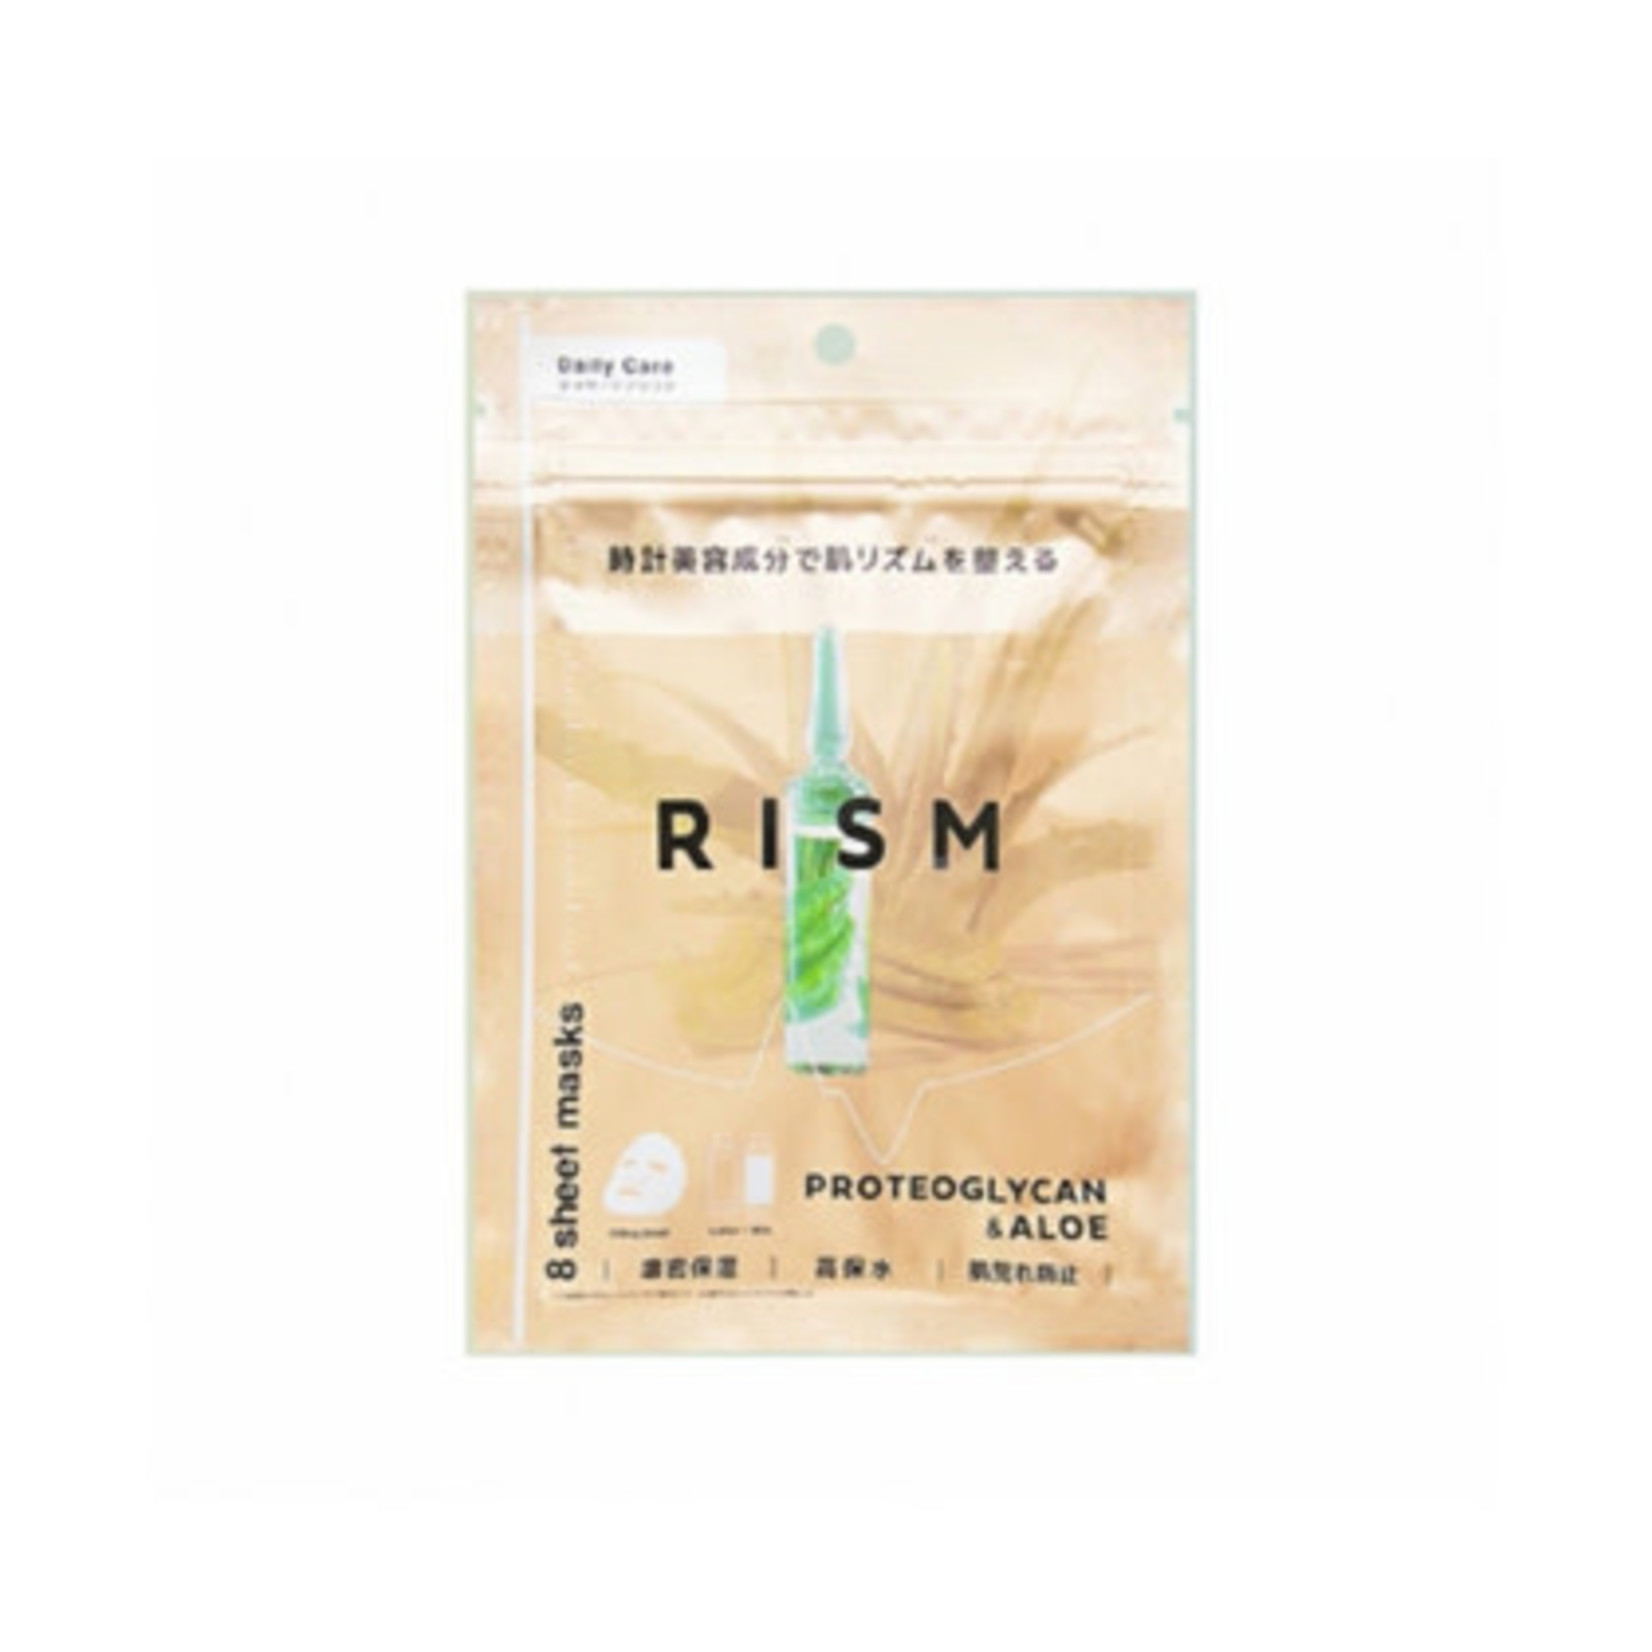 RISM Daily Care Mask